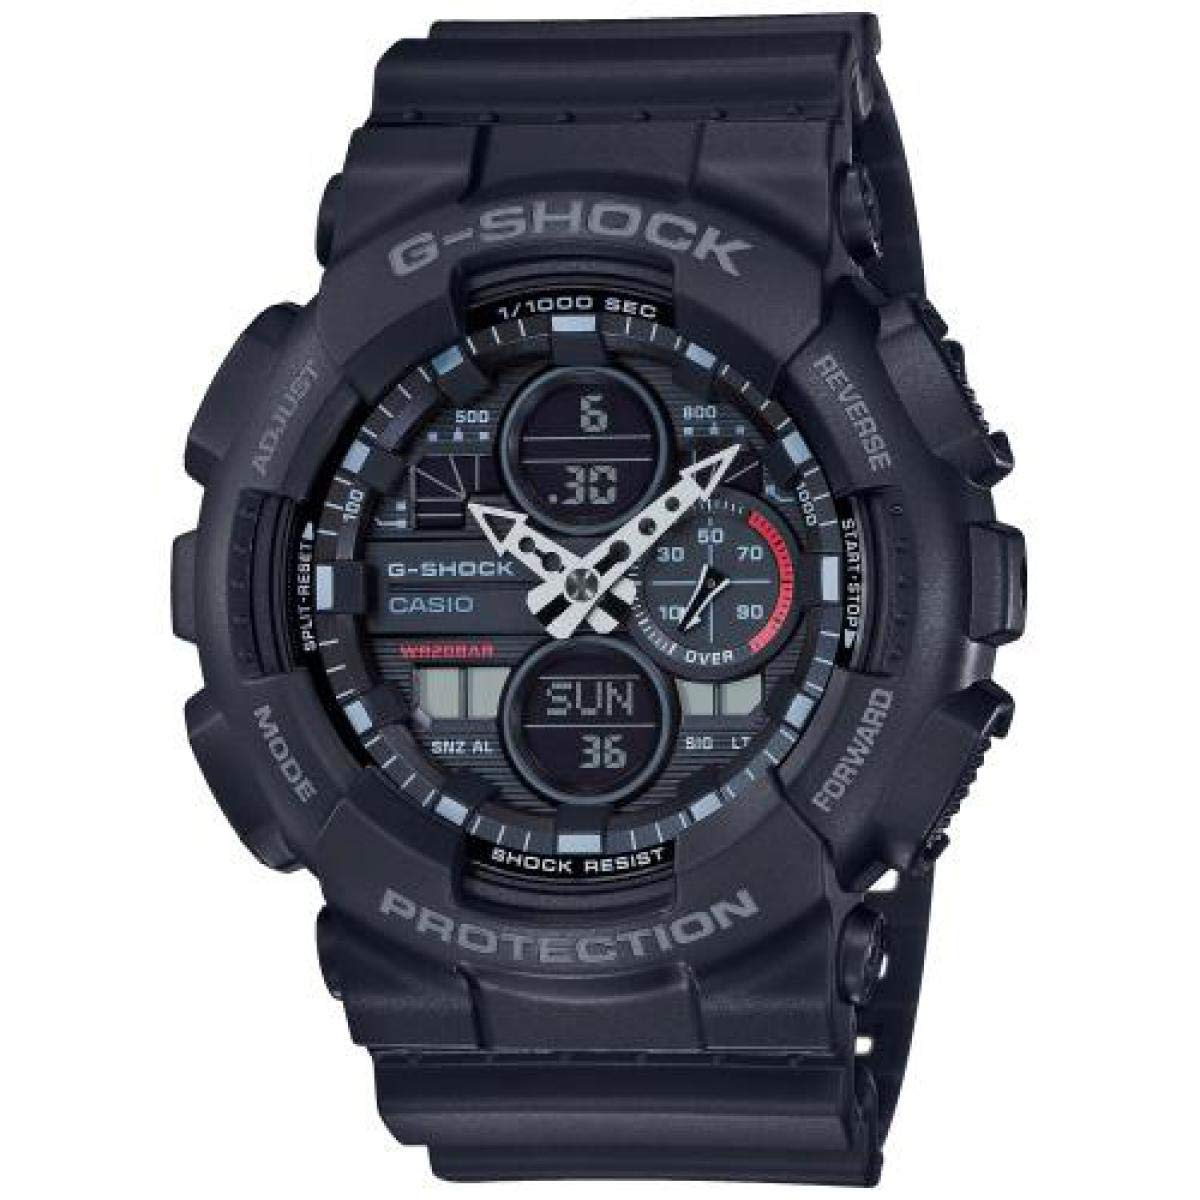 Mens Analogue-Digital Watch with Resin Strap GA-140-1A1ER -Black